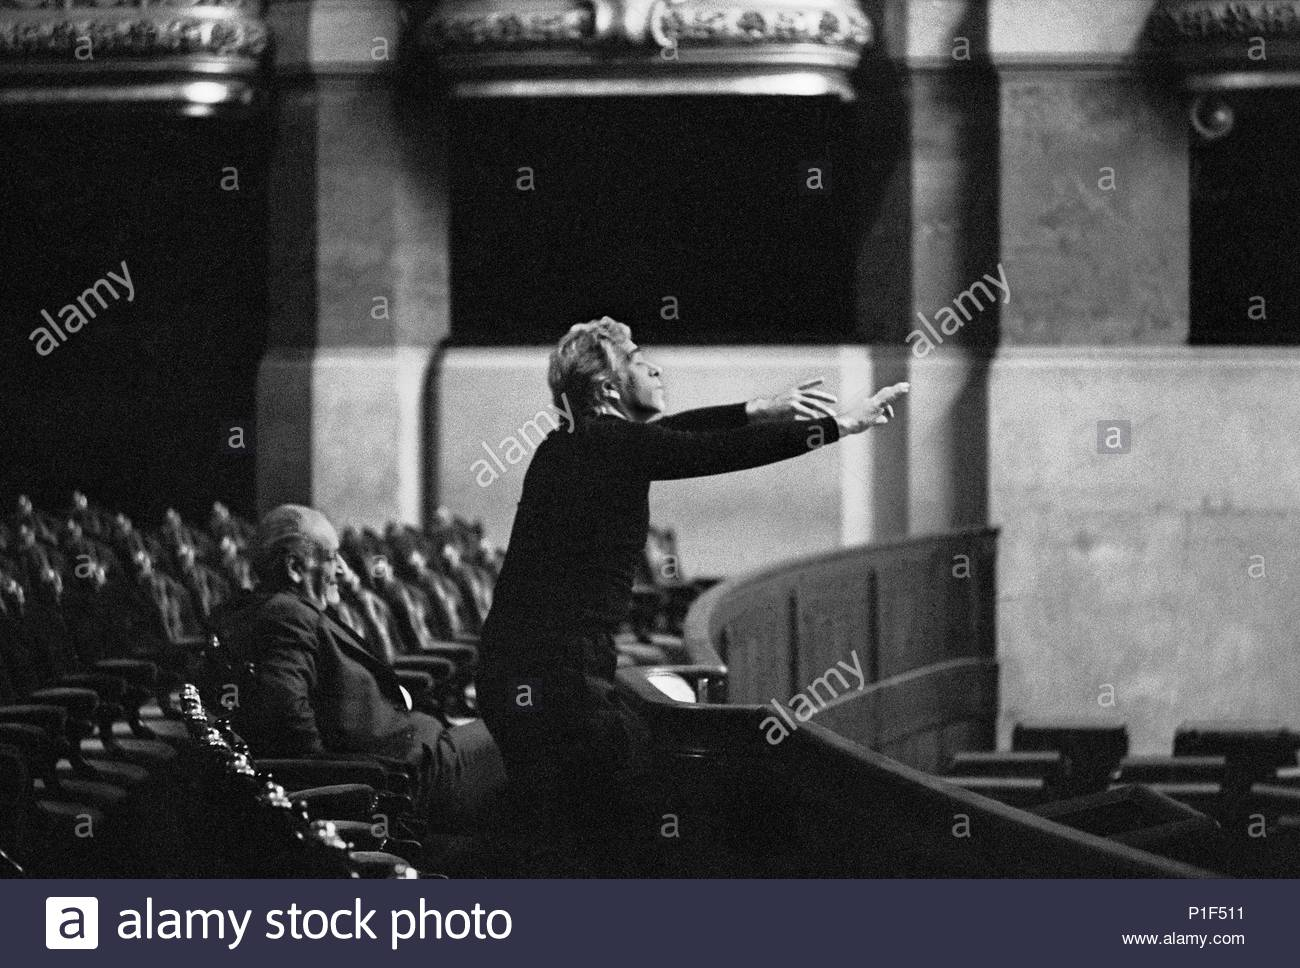 """Giorgio Strehler working with singers during rehearsals for Mozart's """" Marriage of Figaro"""" at the Paris opera Palais Garnier. Sitting: director Rolf Liebermann, Paris,1973. Author: Erich Lessing (b. 1923). Location: Operahouse Palais Garnier, Paris, France. - Stock Image"""